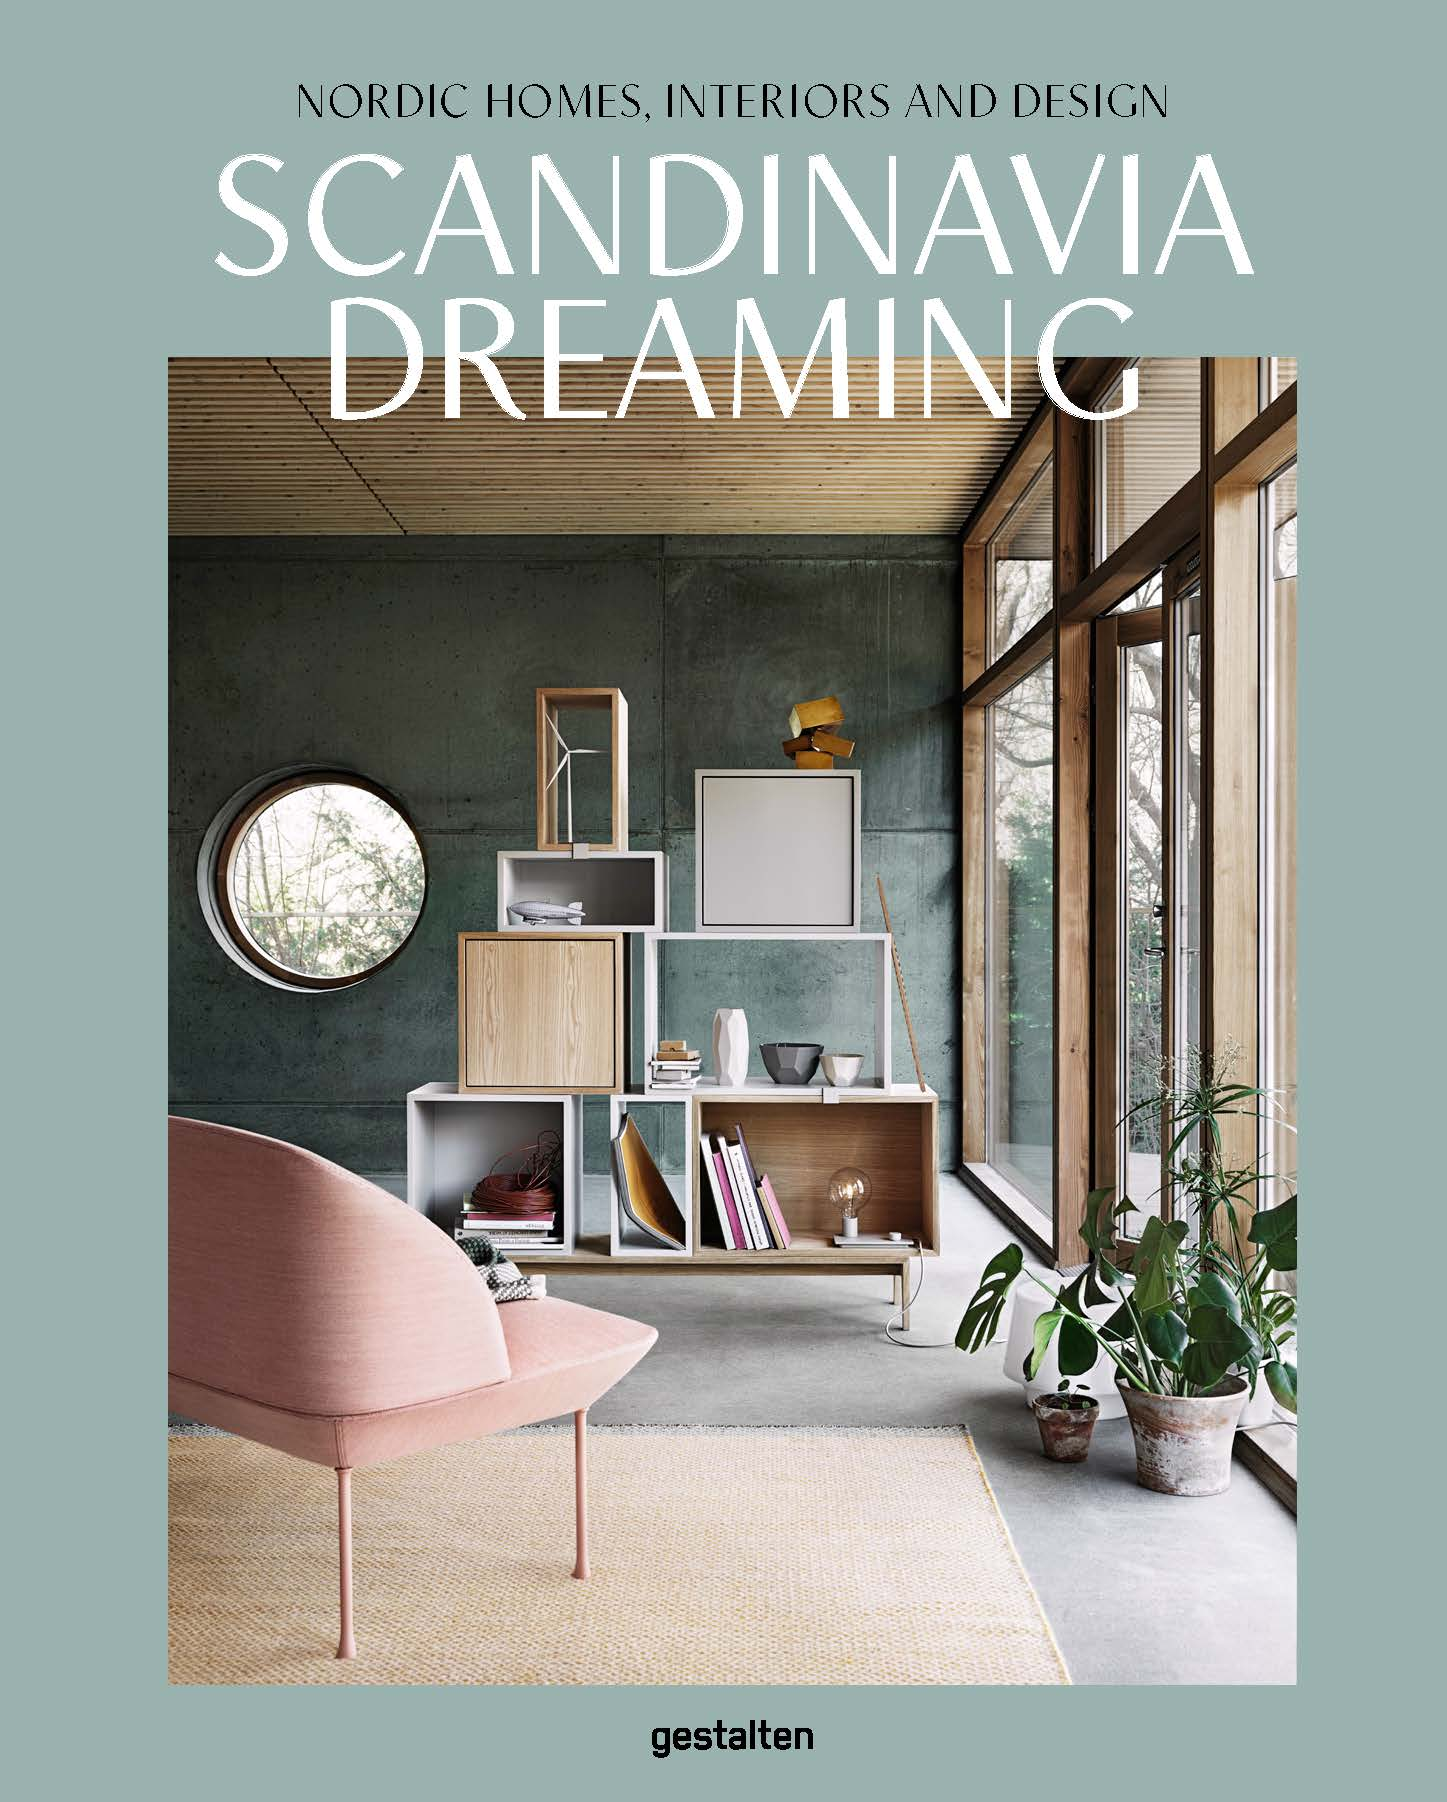 Scandinavian Interior Design Books Scandinavia Dreaming Nordic Homes Interiors And Design